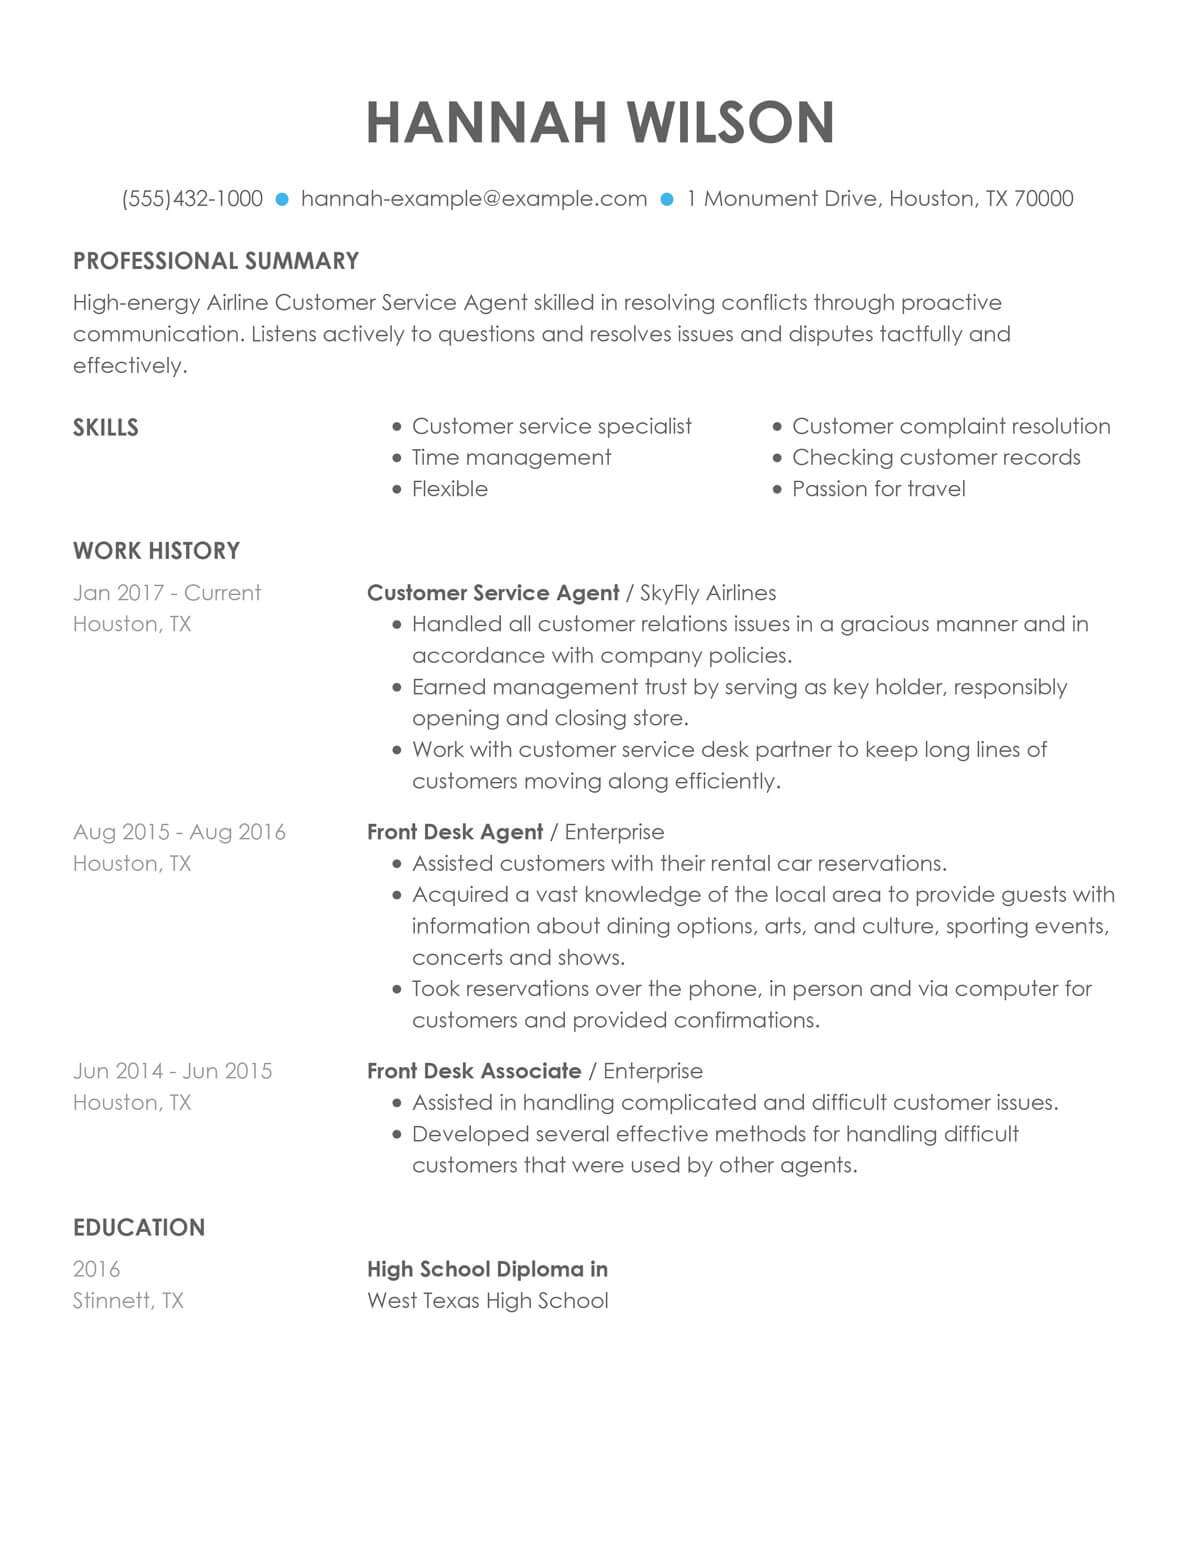 customize our customer representative resume example service keywords airline agent Resume Customer Service Representative Resume Keywords